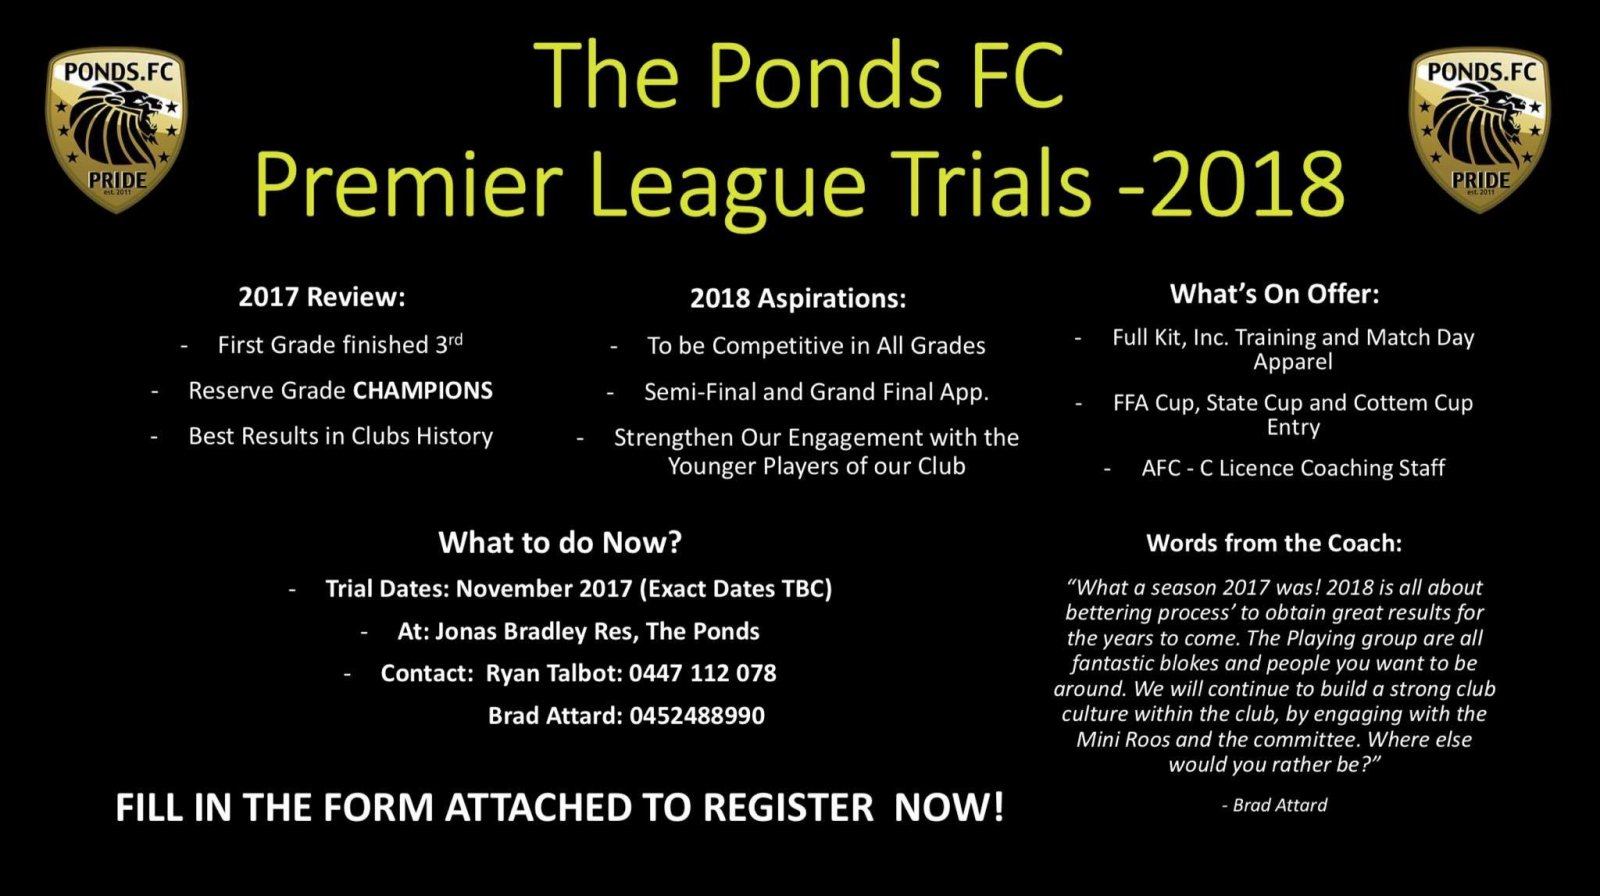 Ponds FC Premier League Trials 2018